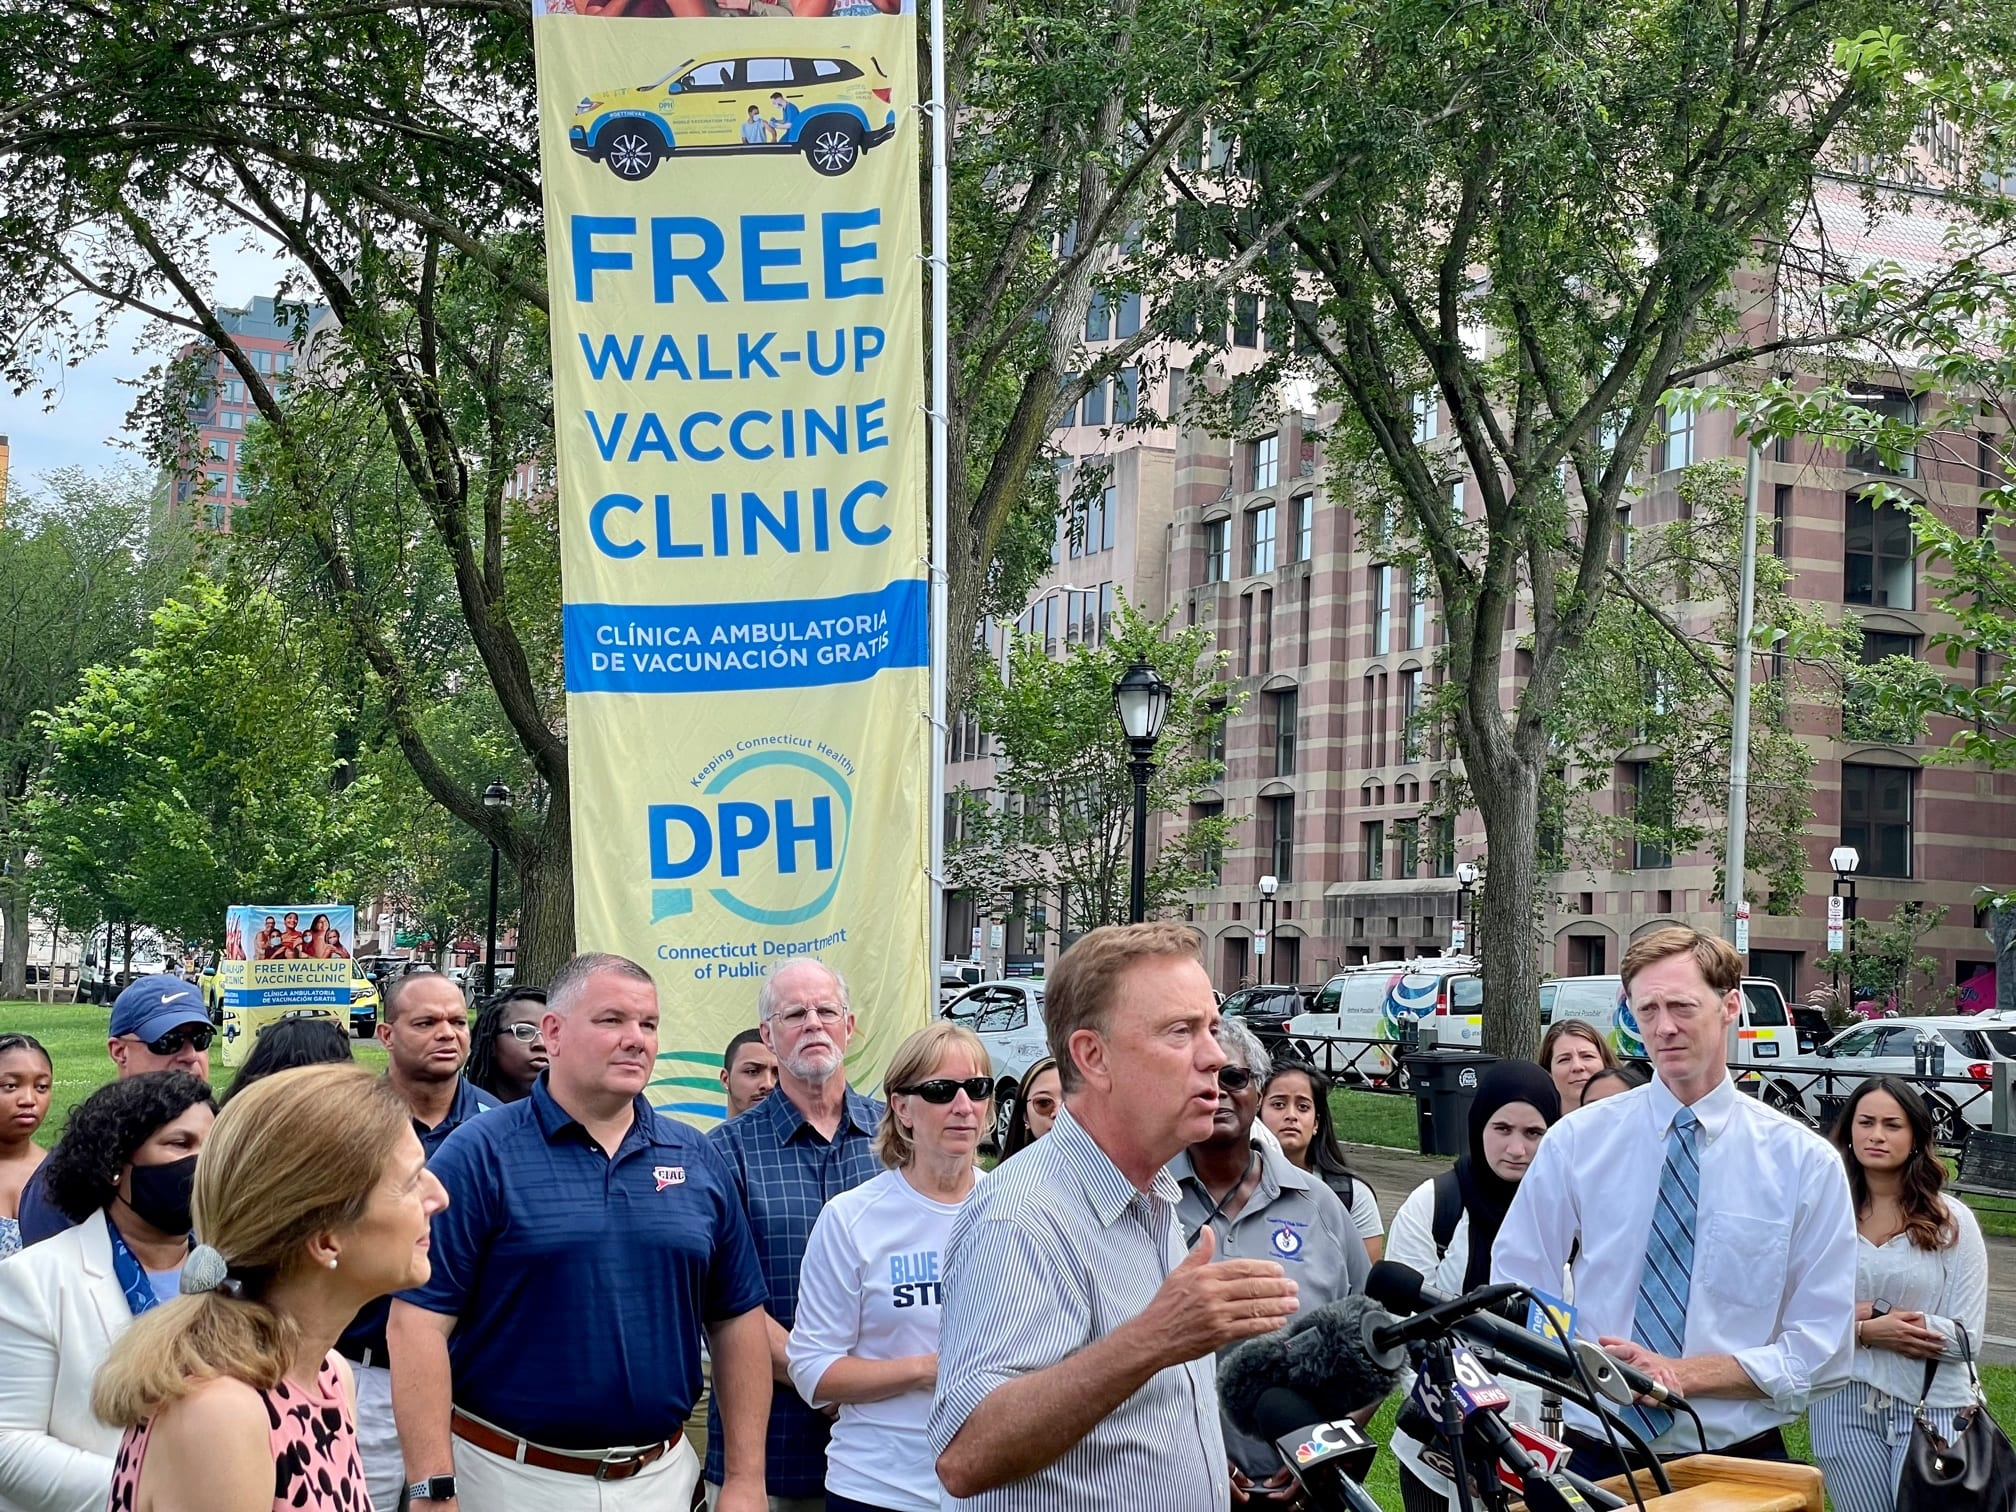 Lamont sees no need for vaccine mandates, at least for now